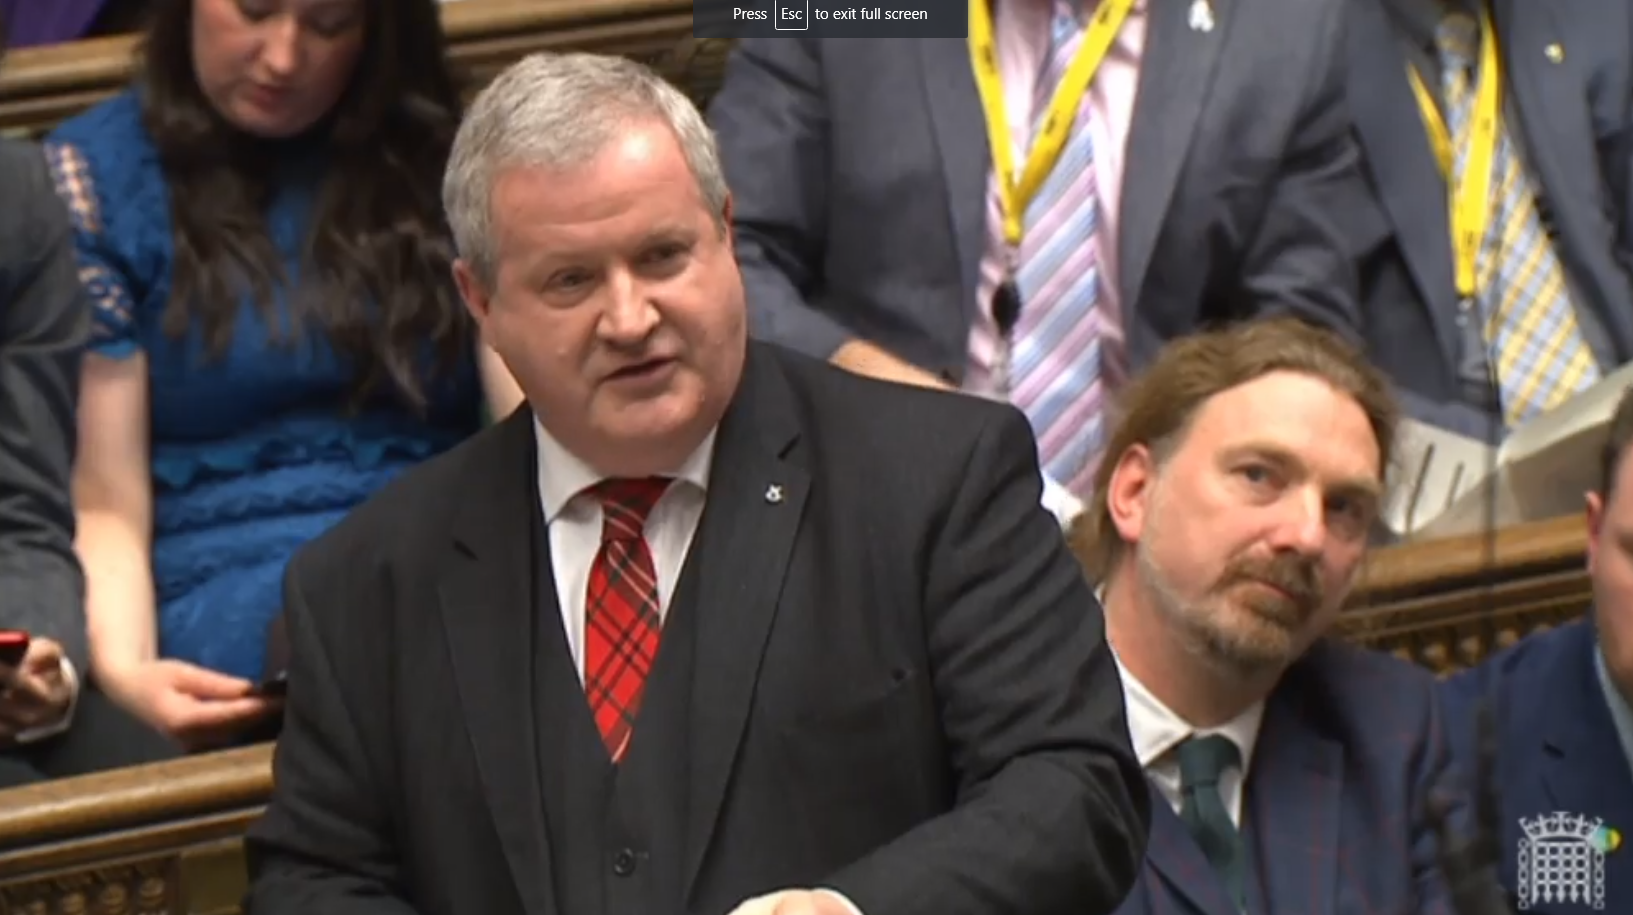 Blackford says 'Scotland is shackled to a sinking ship' as Tory MPs heckle